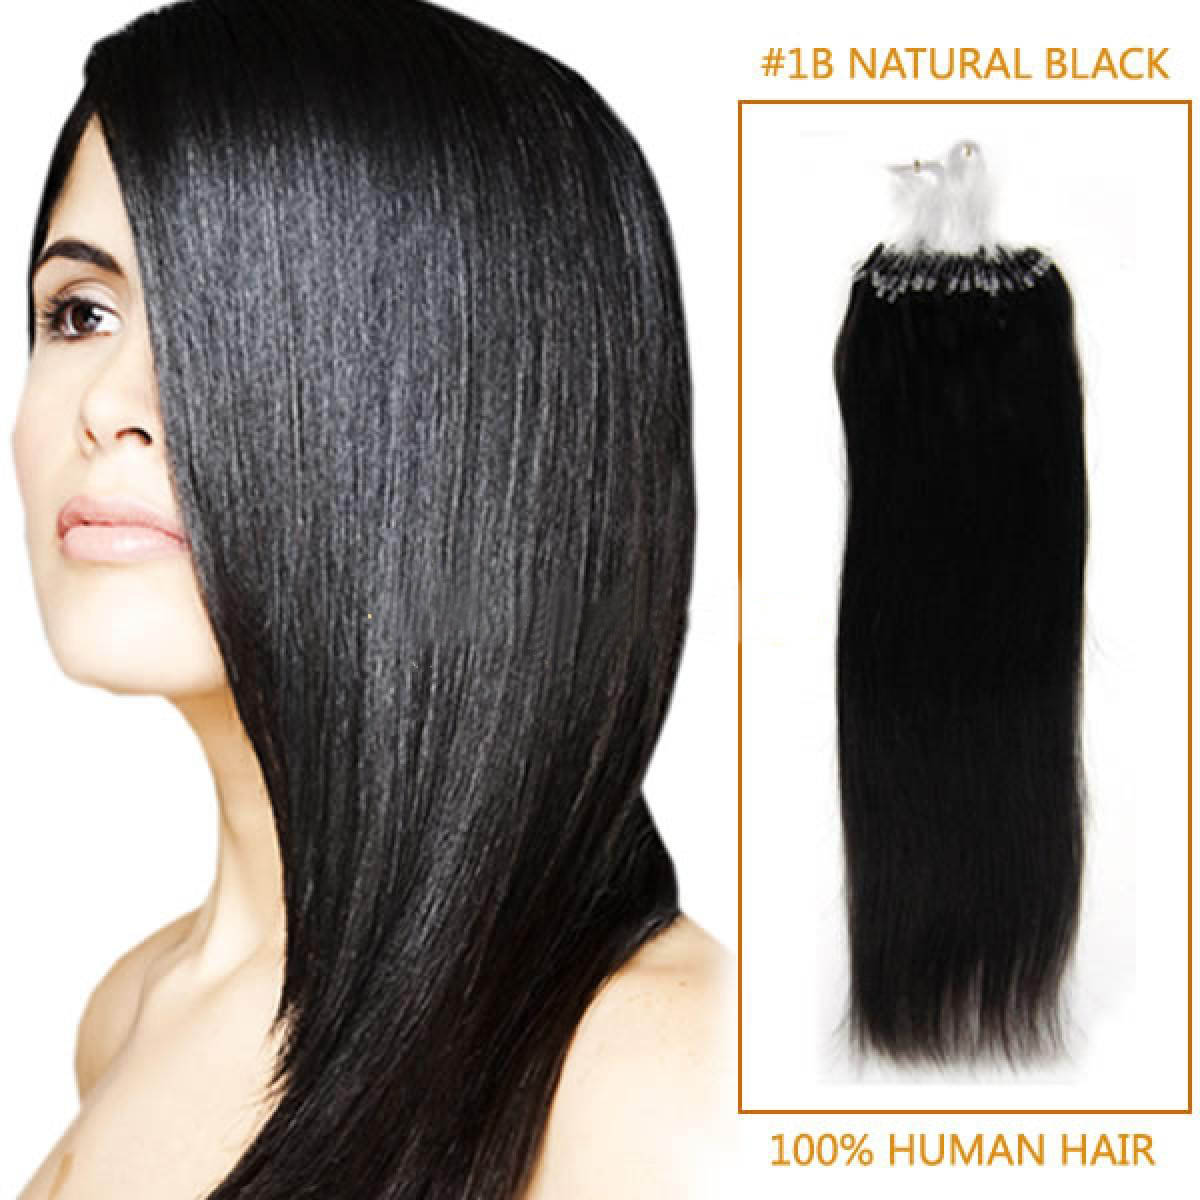 18 Inch 1b Natural Black Micro Loop Human Hair Extensions 100s 100g